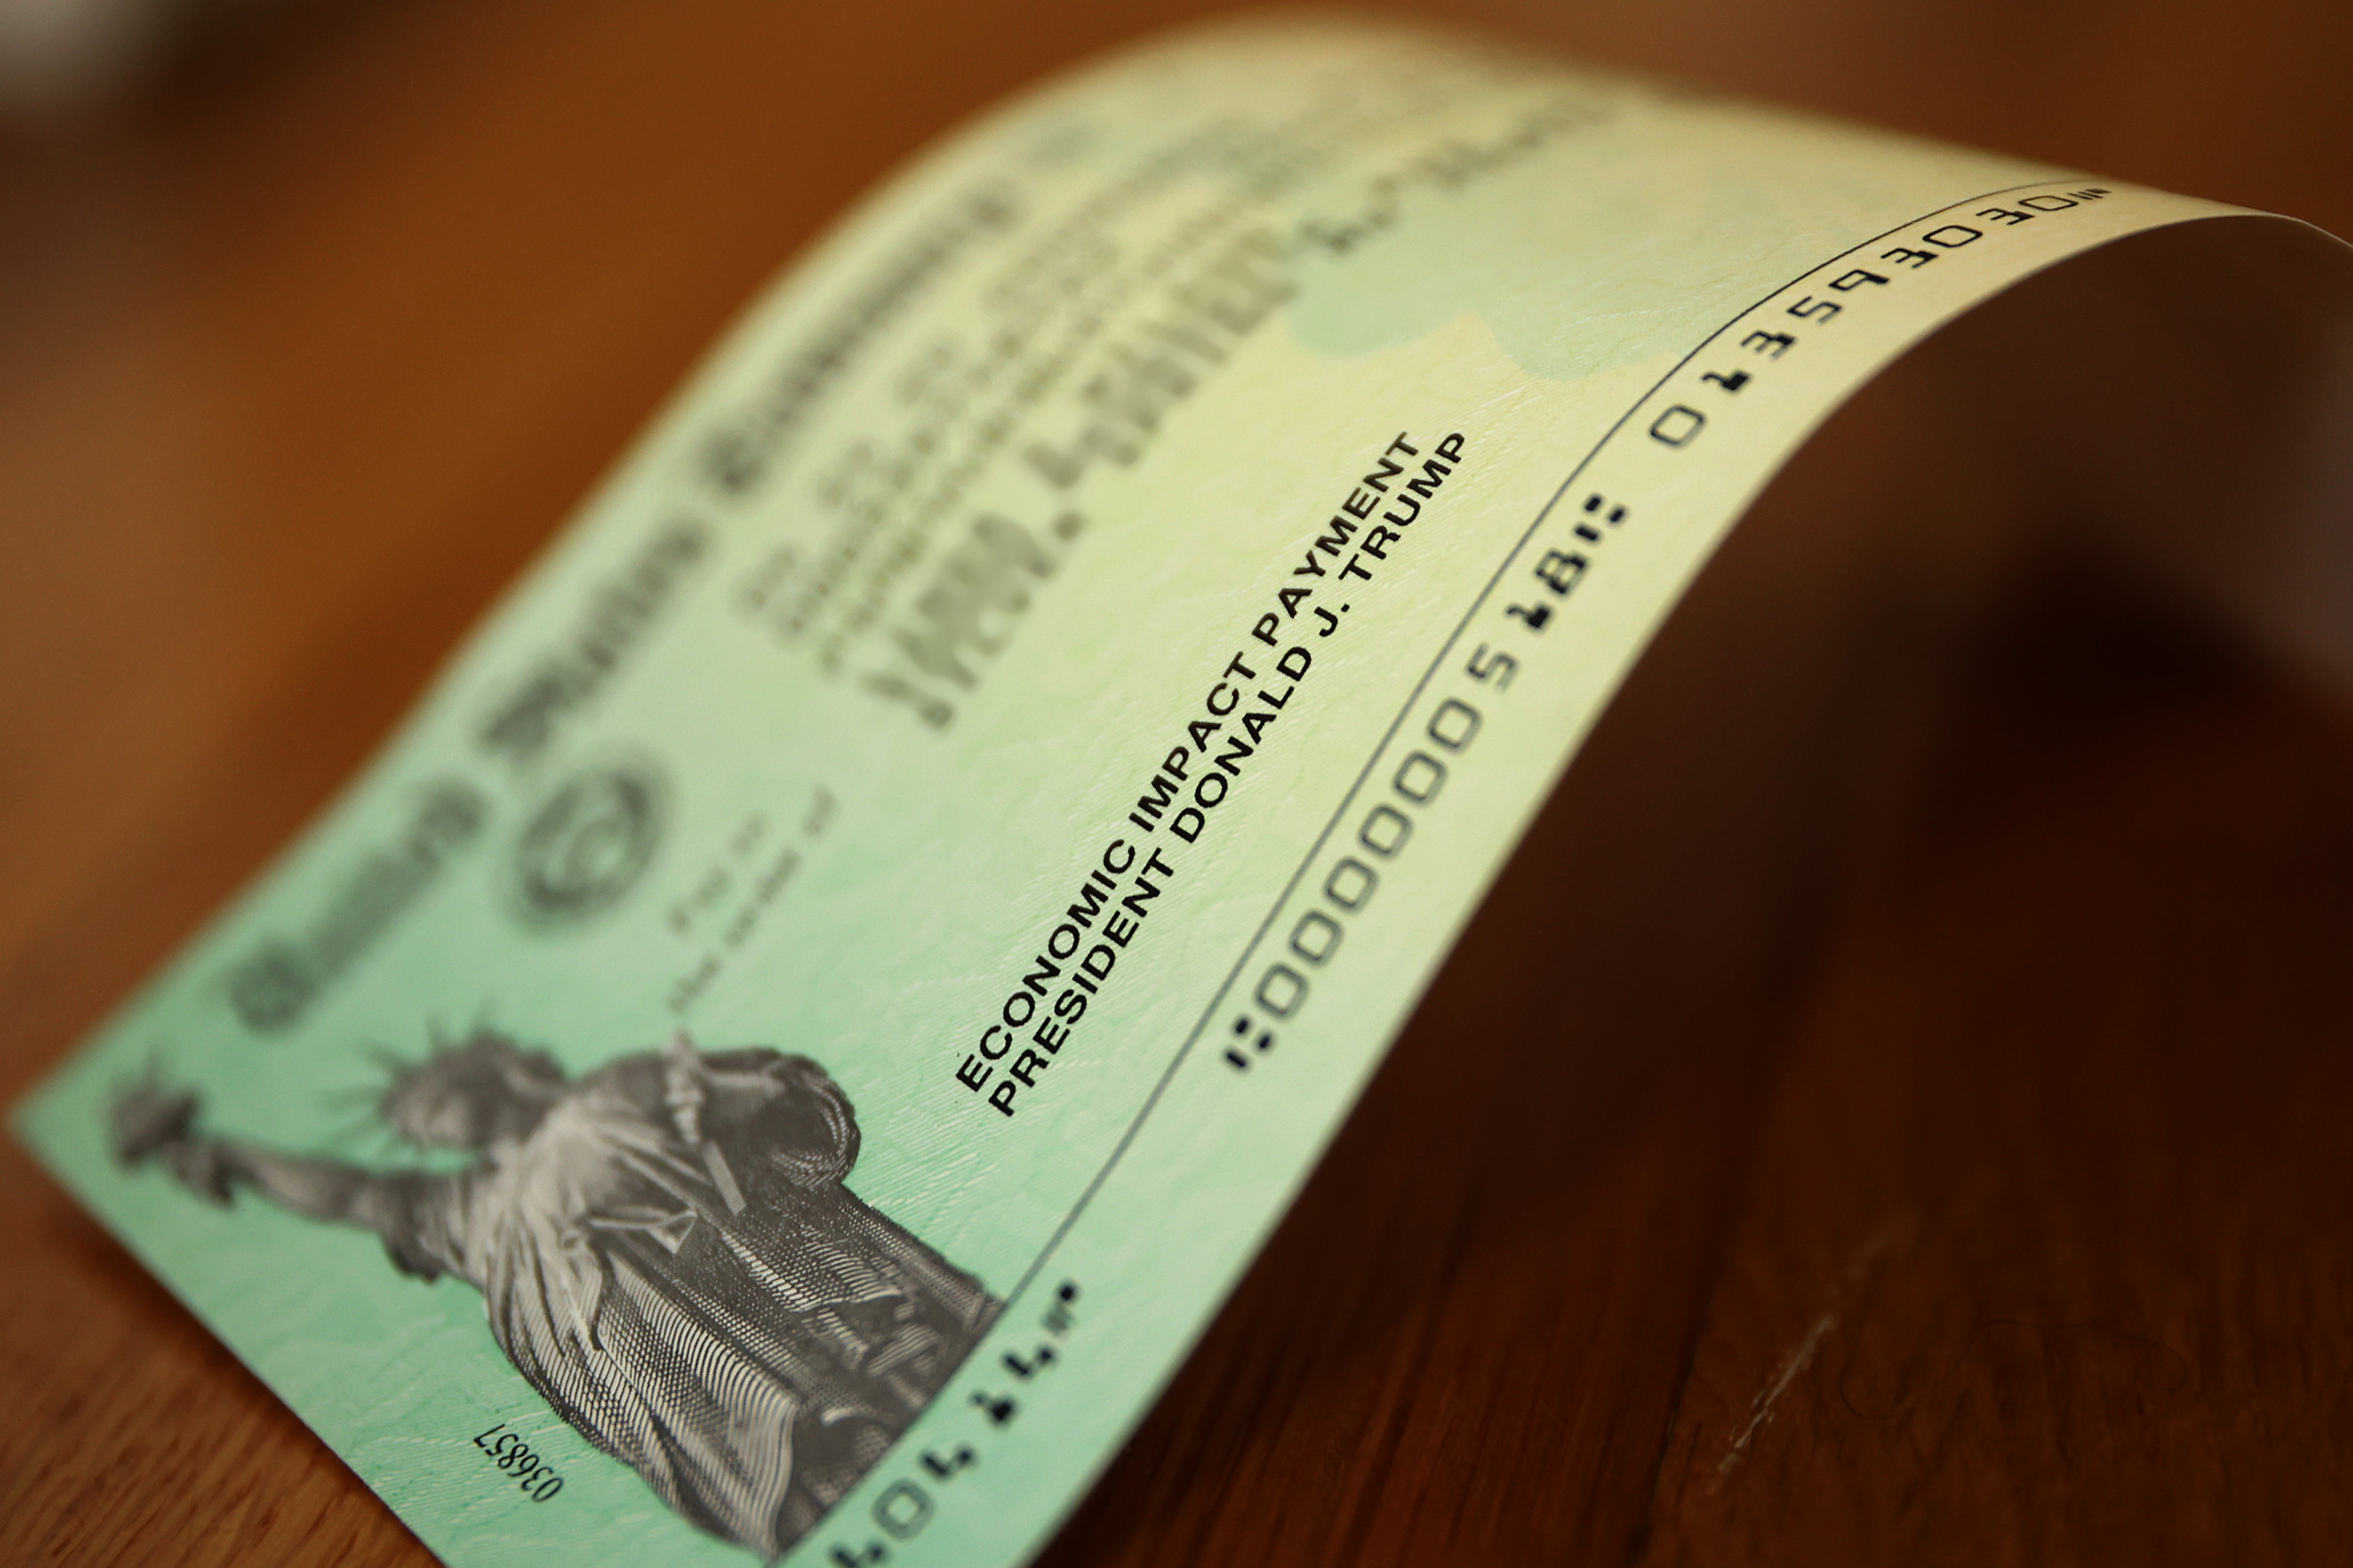 A Wisconsin man received a stimulus check for $5.60 rather than the full $1,200